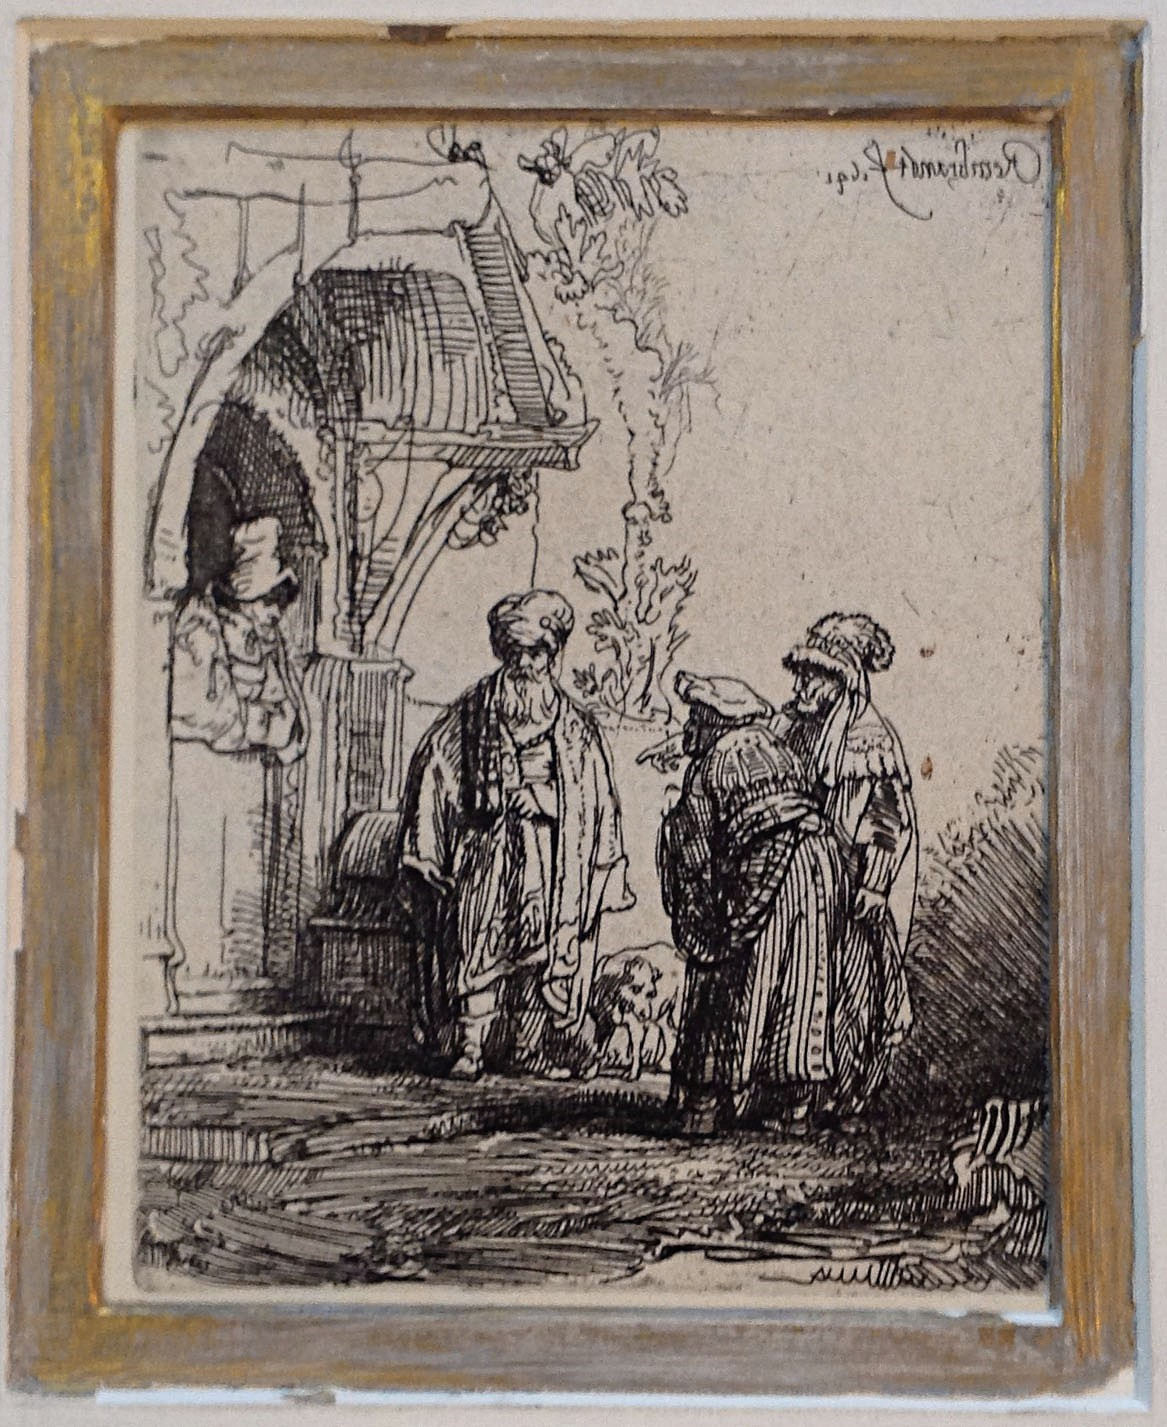 Rembrandt van Rijn, Three Oriental Figures; 'Jacob and Laban', reverse etching with drypoint. Photo: Hessink's